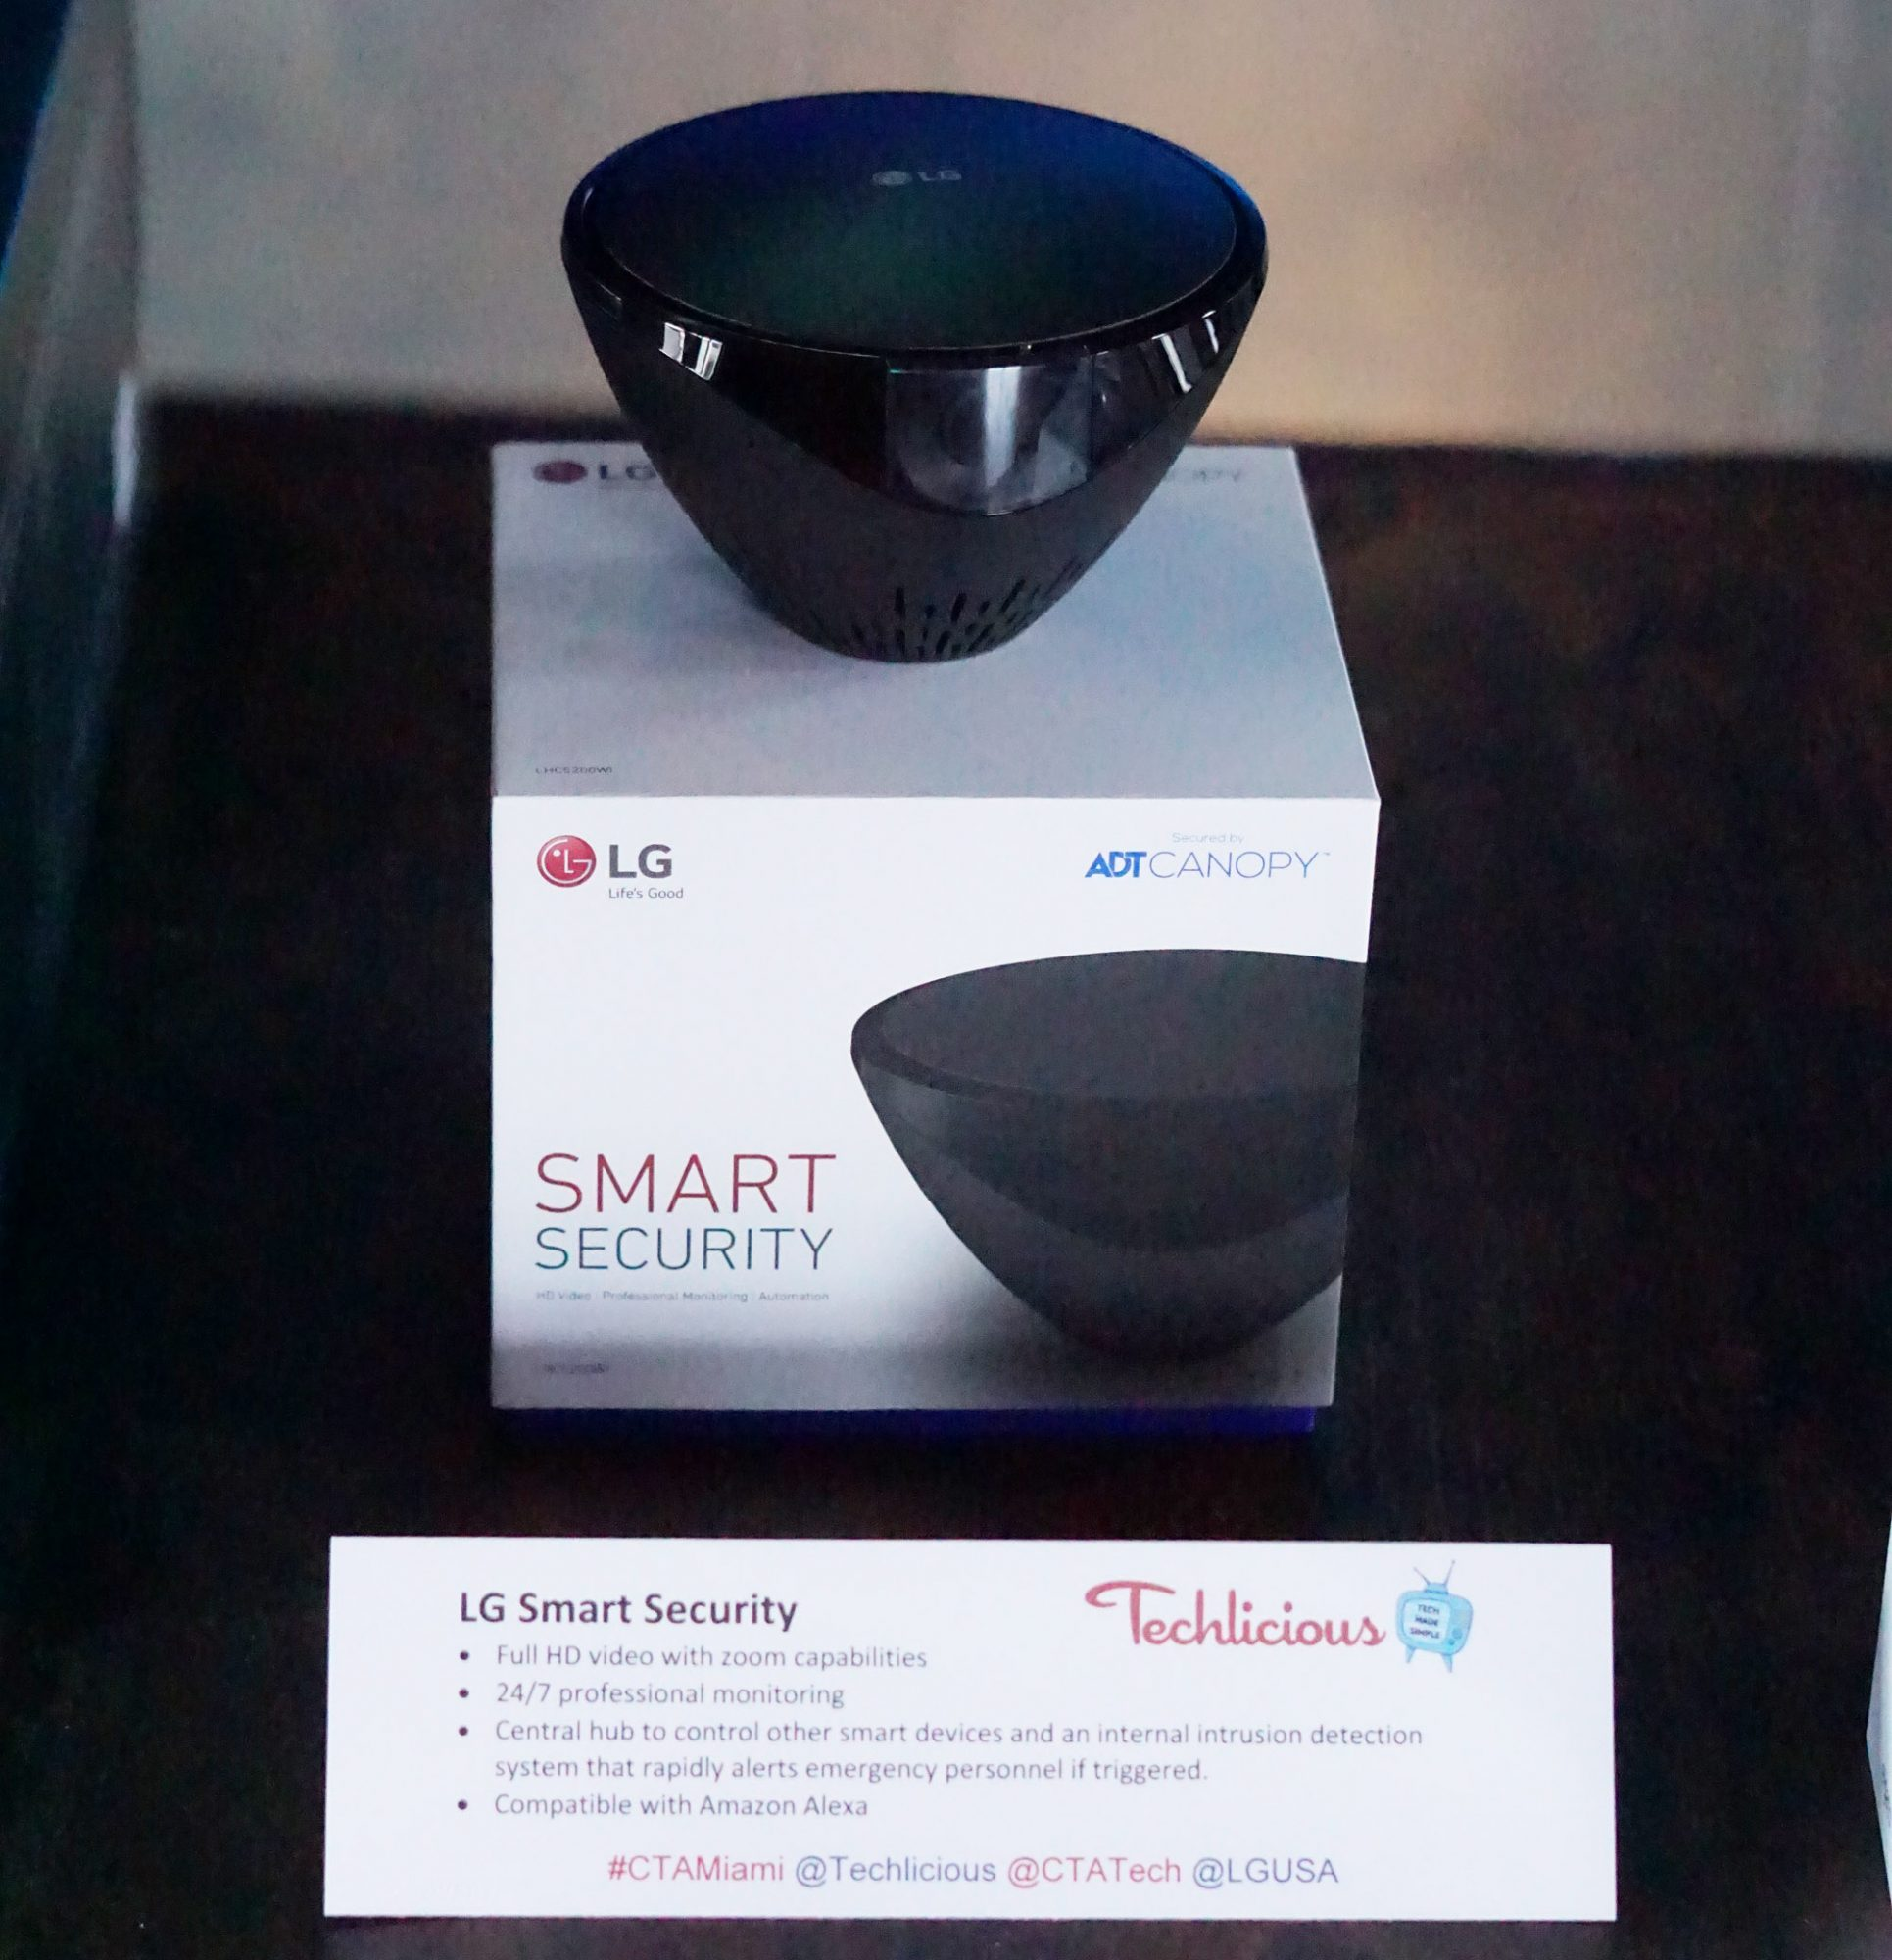 LG Smart Security Digital Tech Influencer